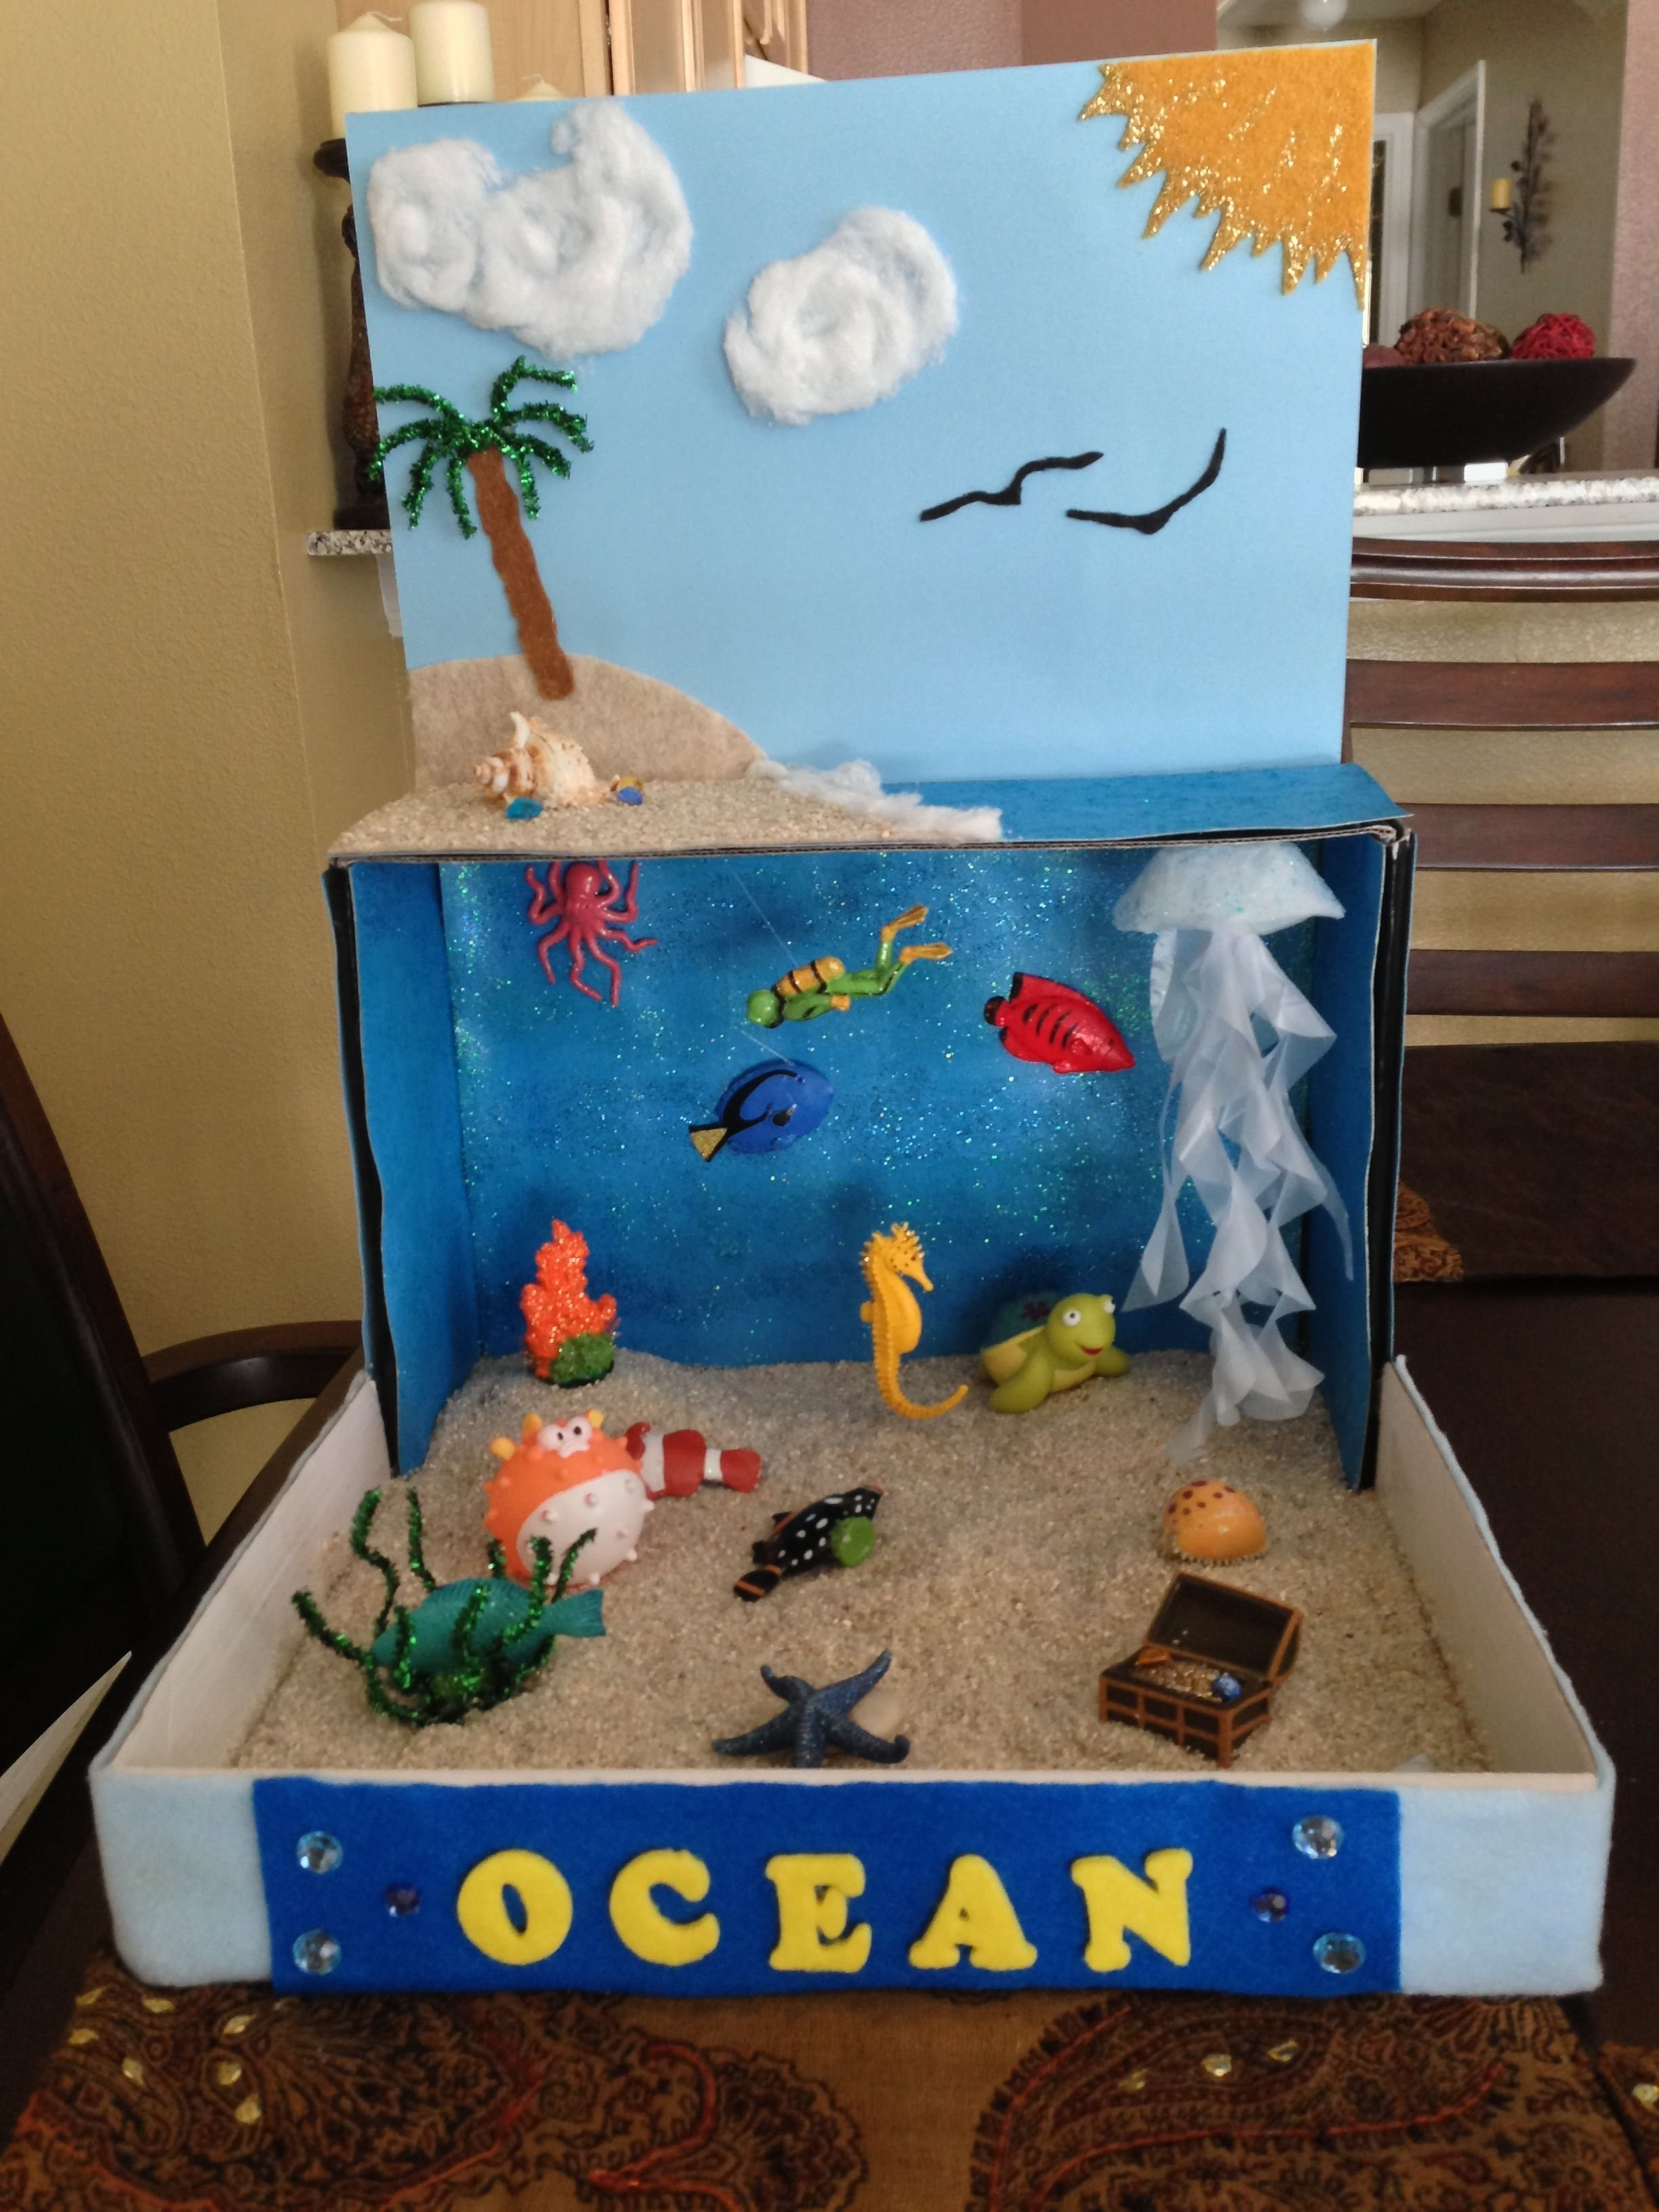 10 Pretty How To Ideas For A Project ocean diorama for school project idea for henry 2nd grade project